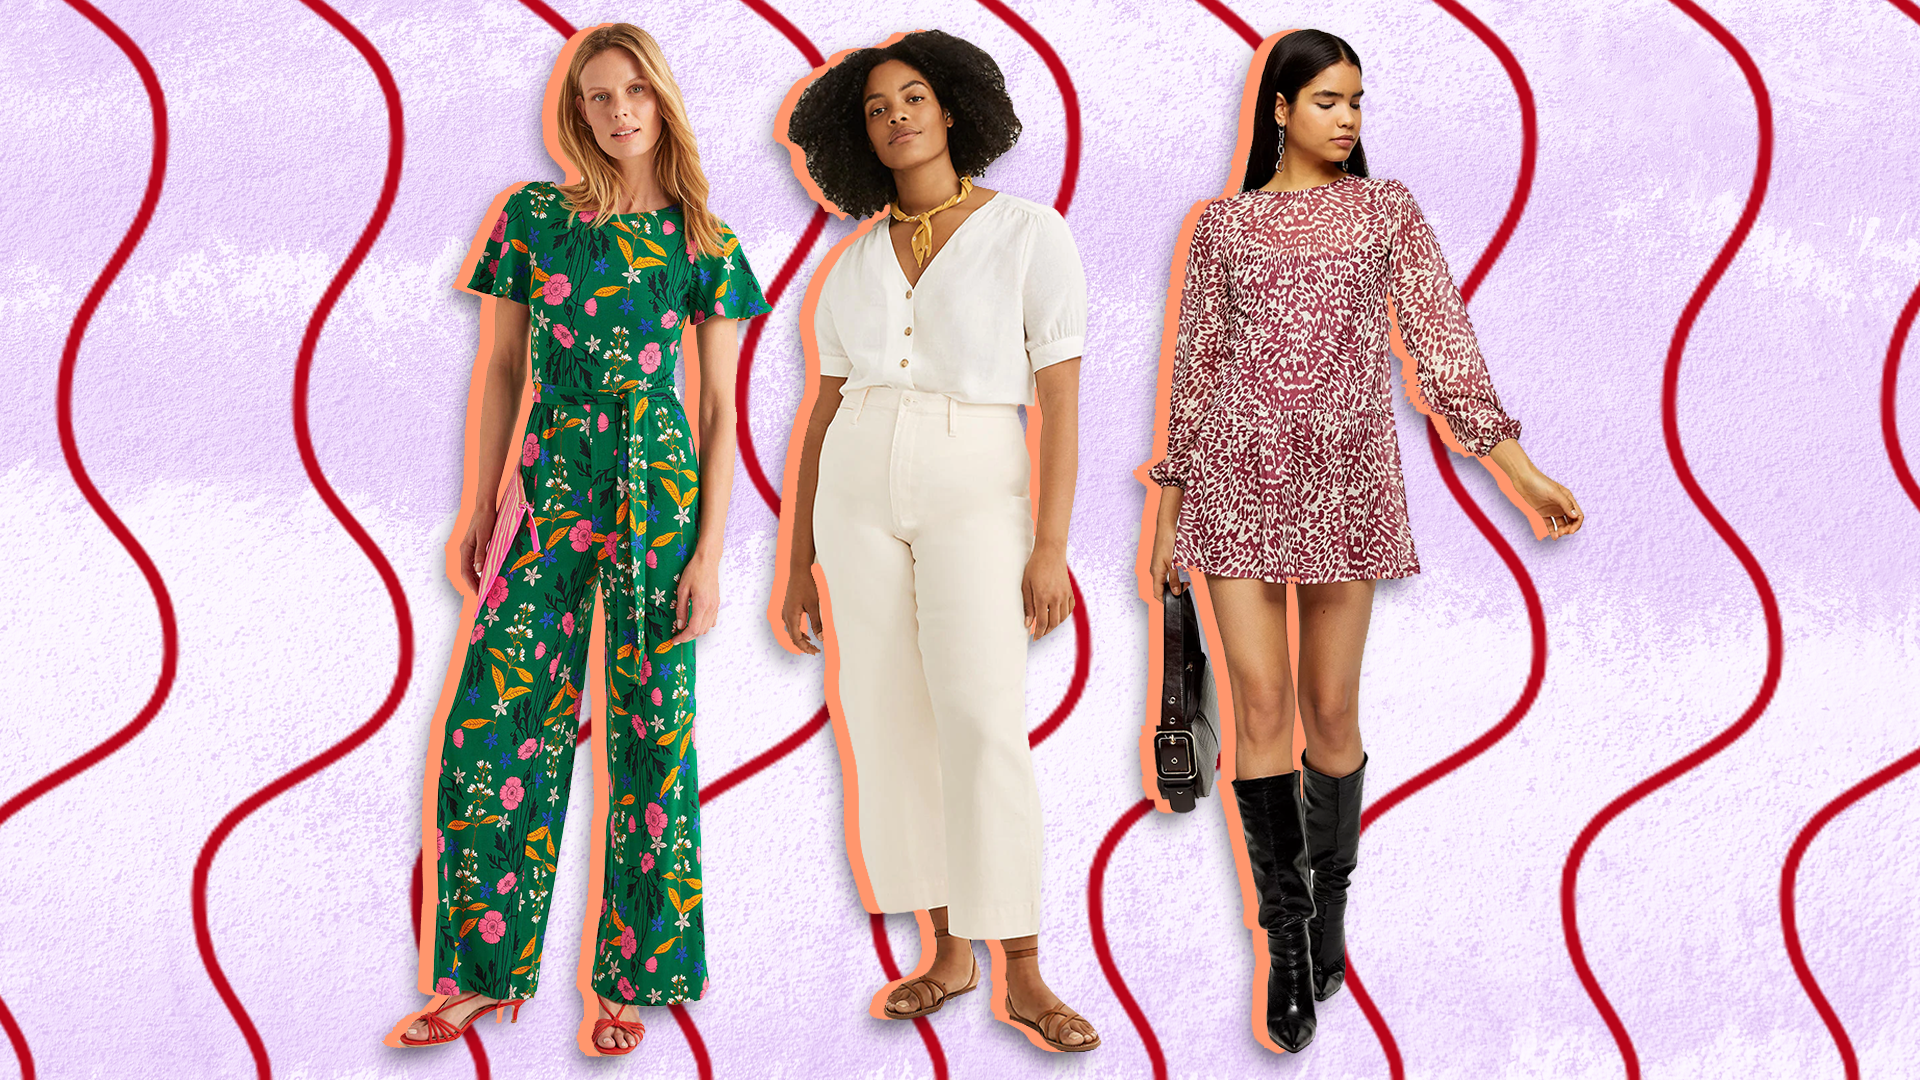 The Best Places To Shop If You're Tall Or Have A Long Torso